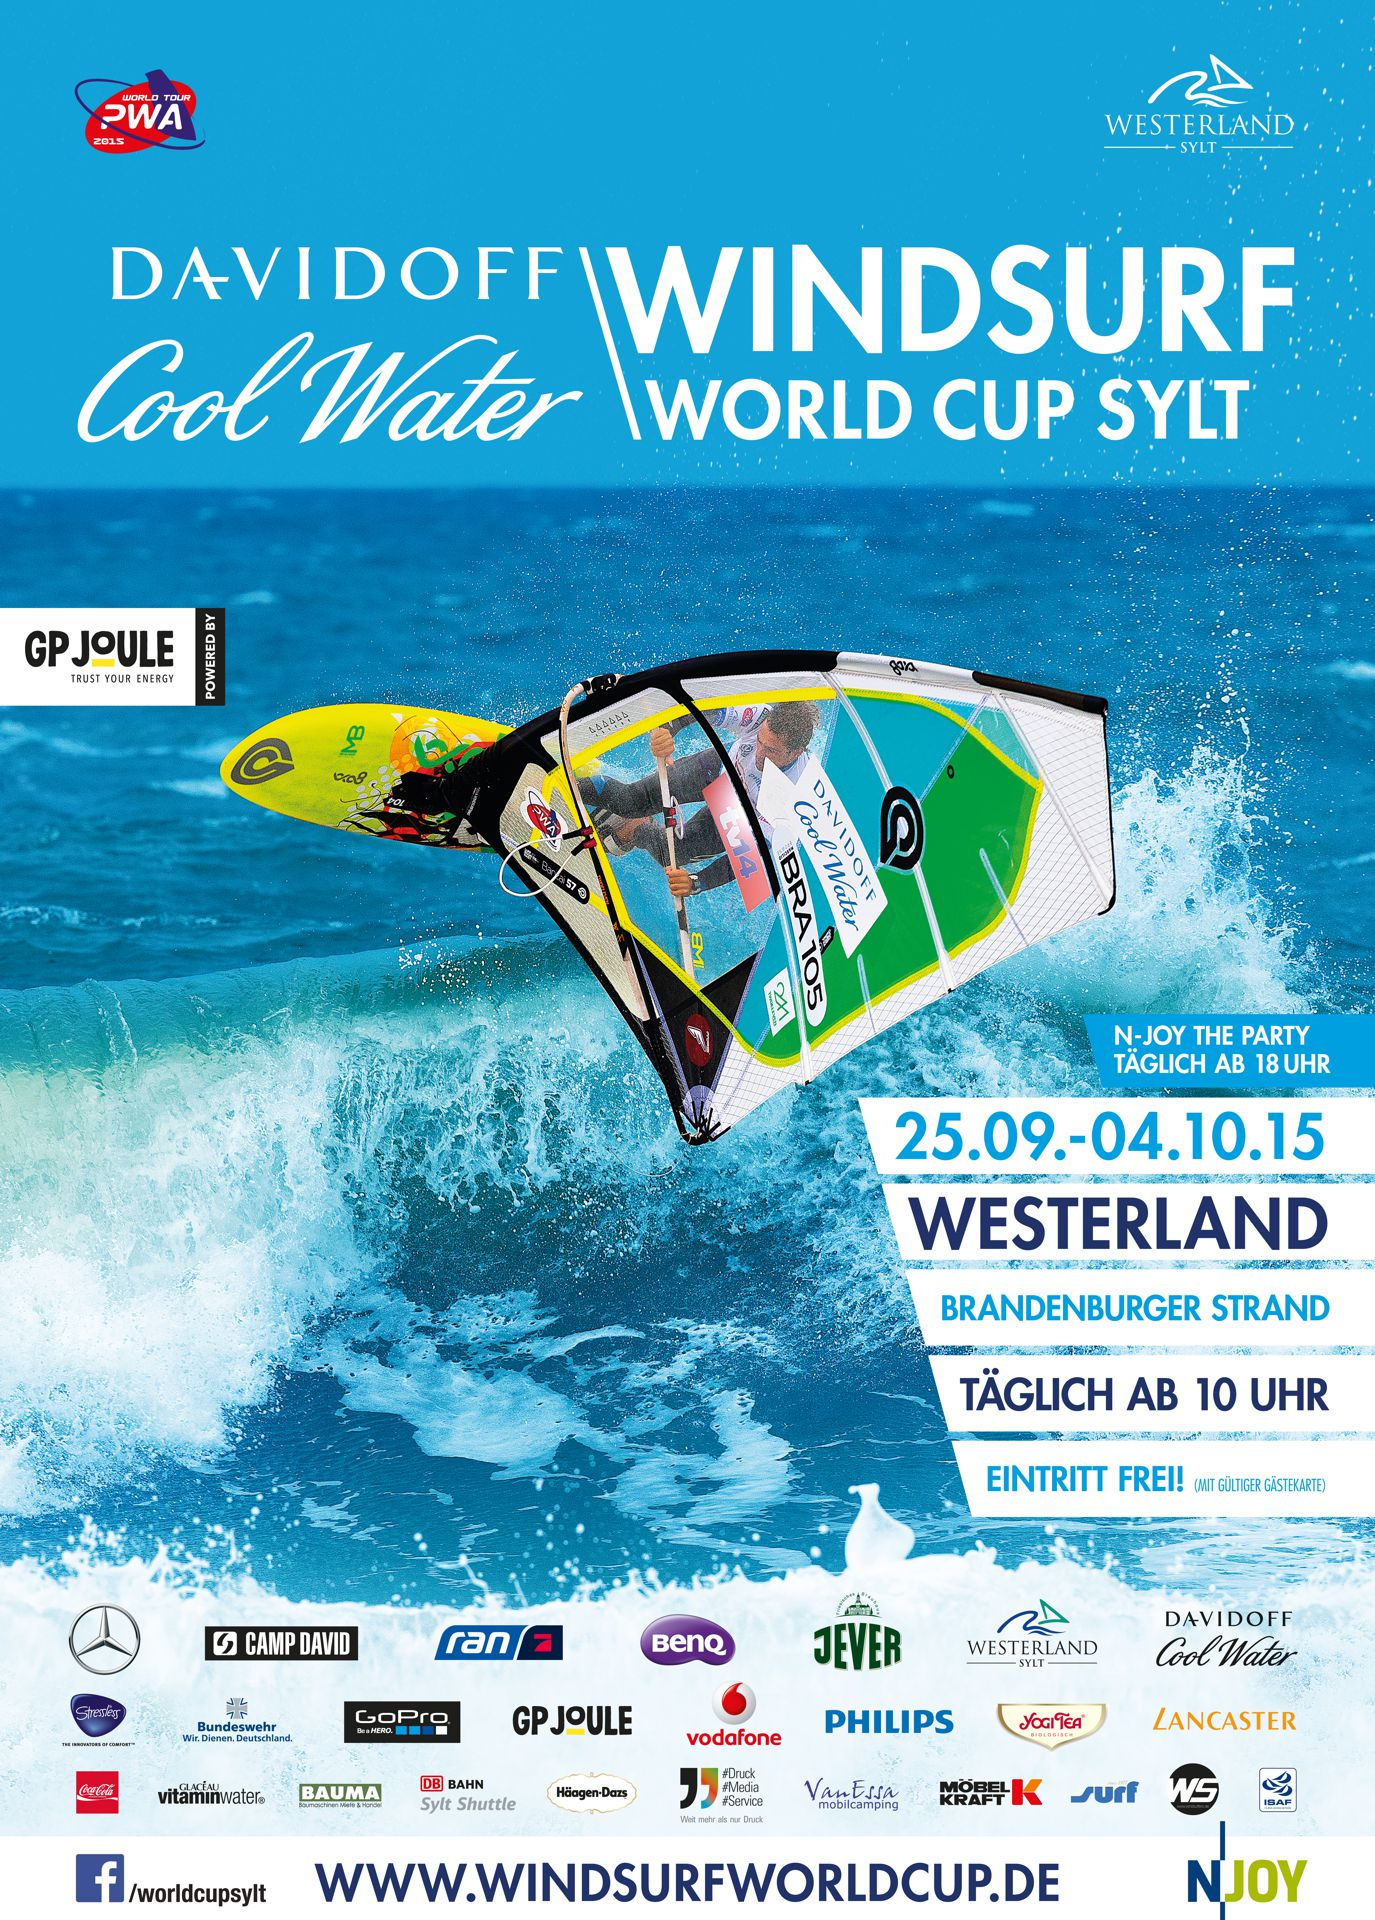 DAVIDOFF Cool Water World Cup Sylt